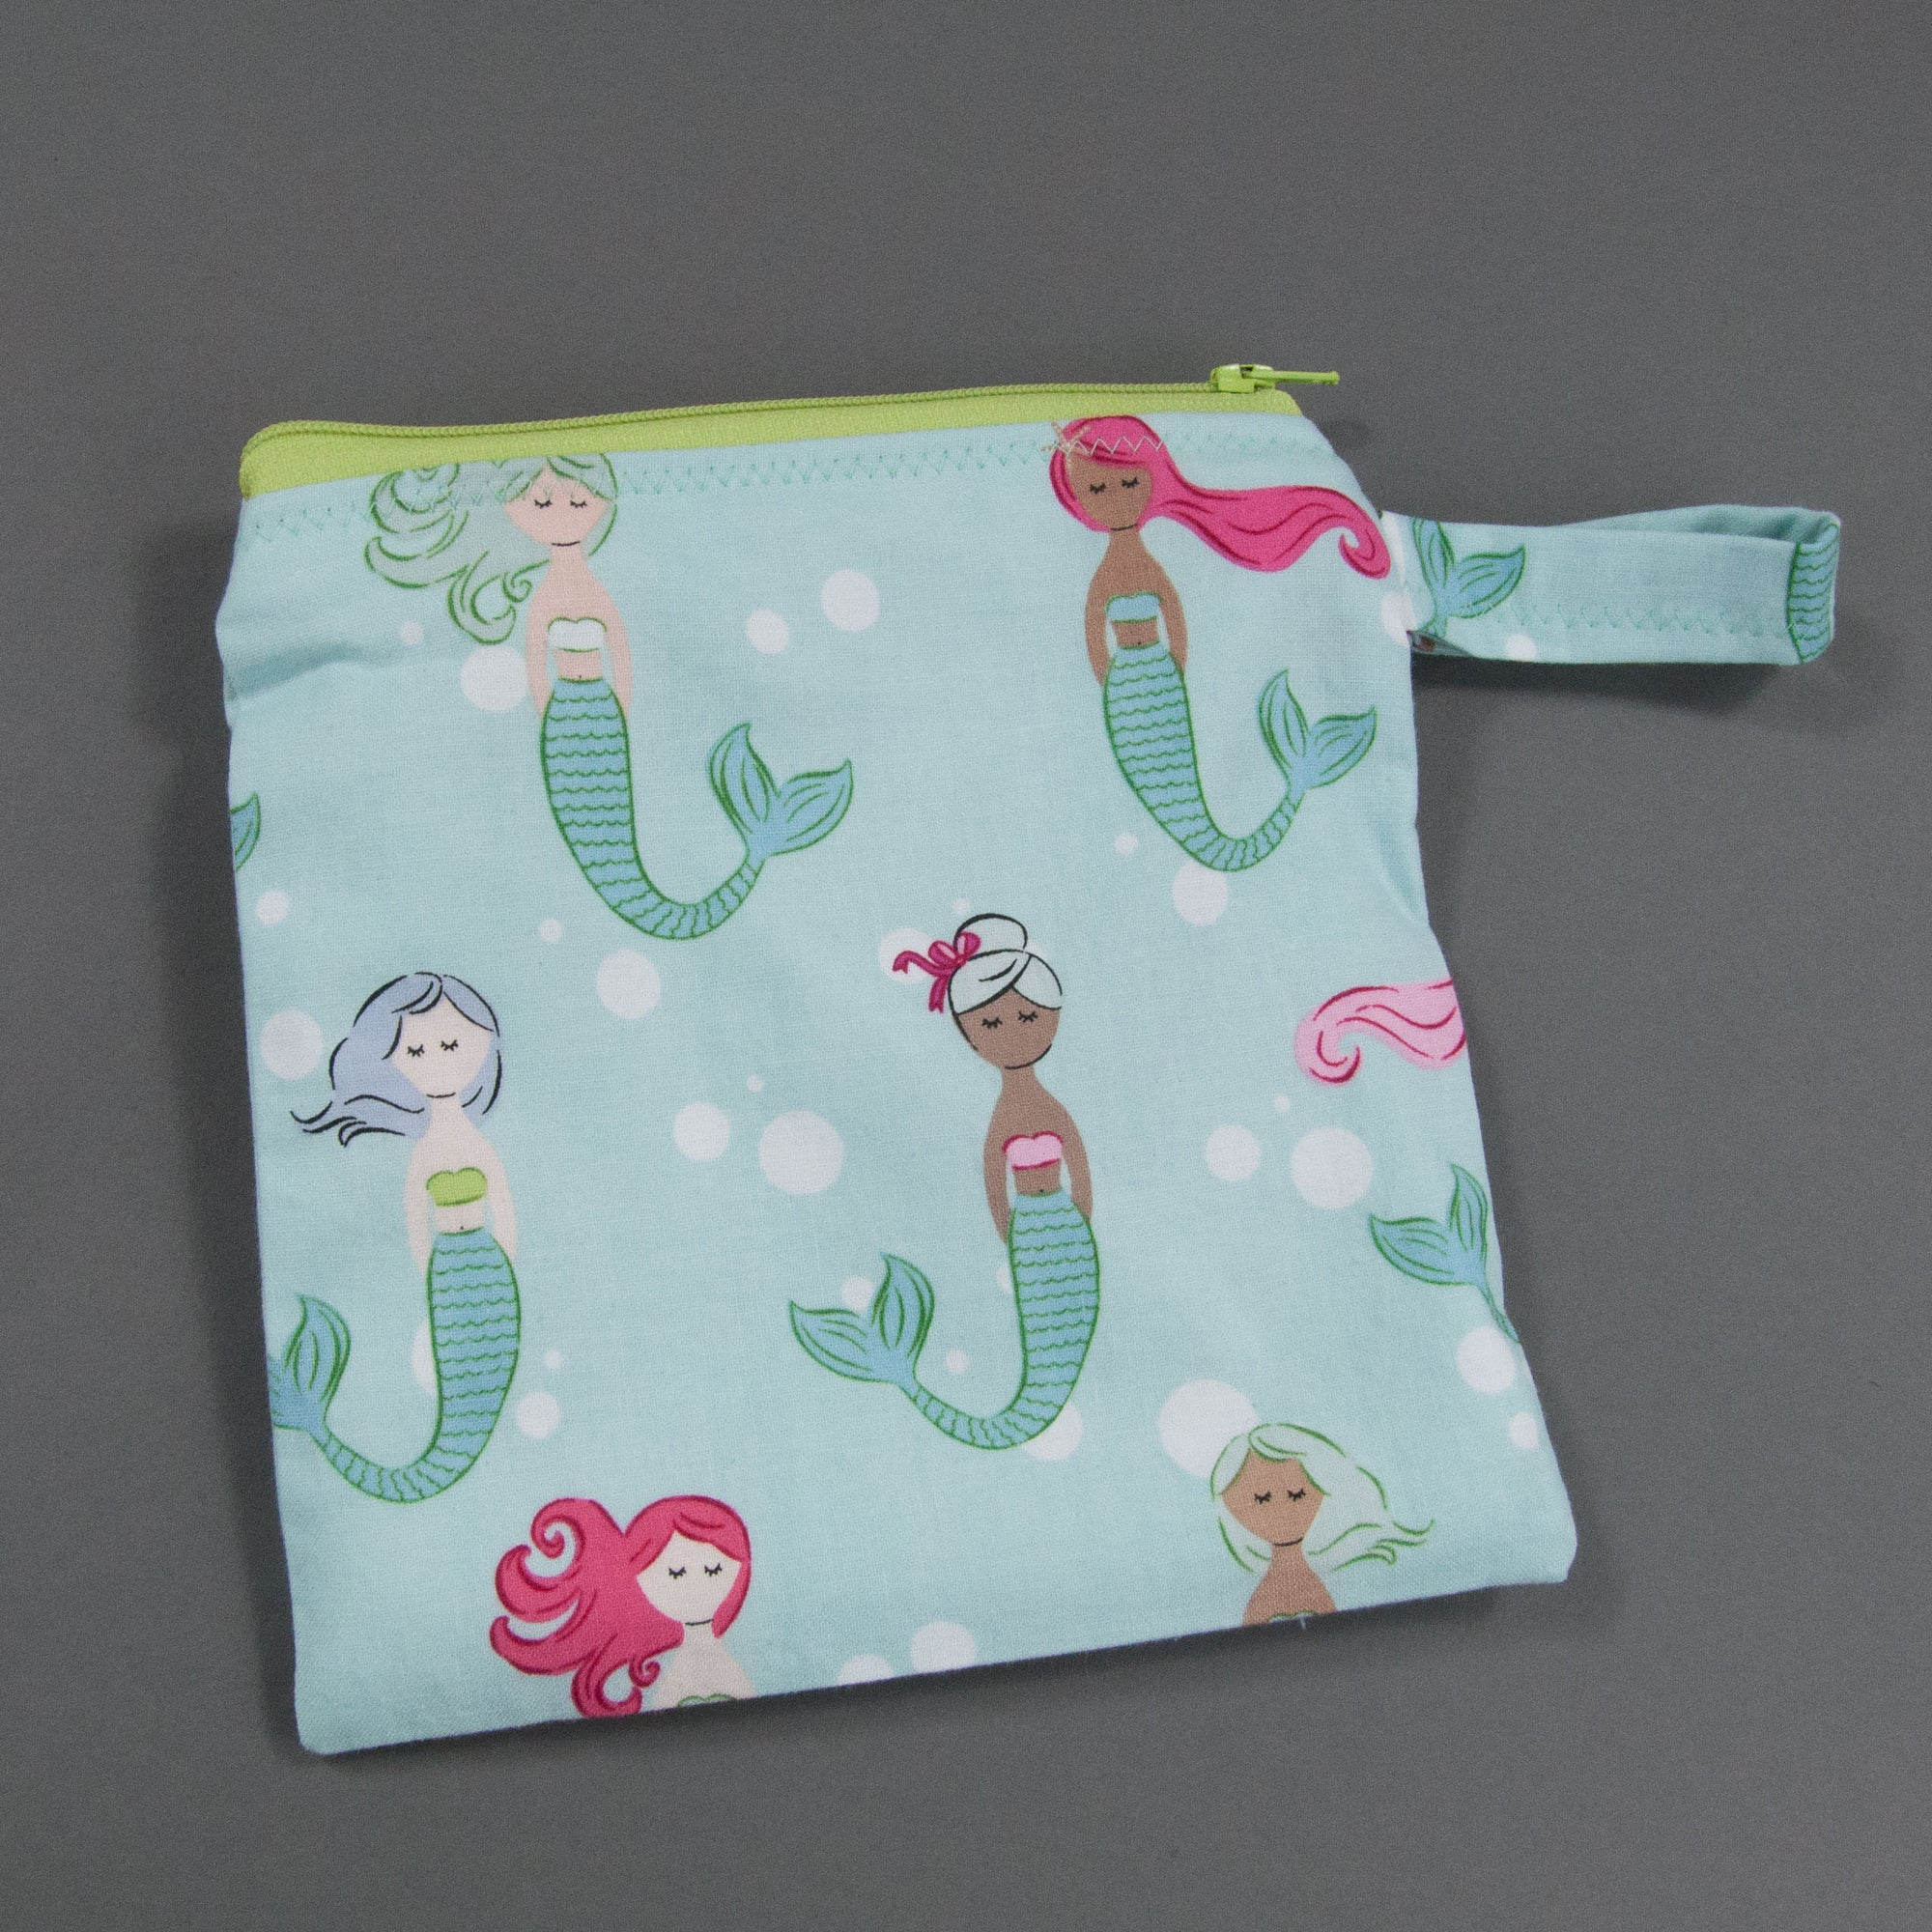 Colorful Mermaids Reusable Sandwich Bag, Reusable Sandwich Bag, - MarshMueller